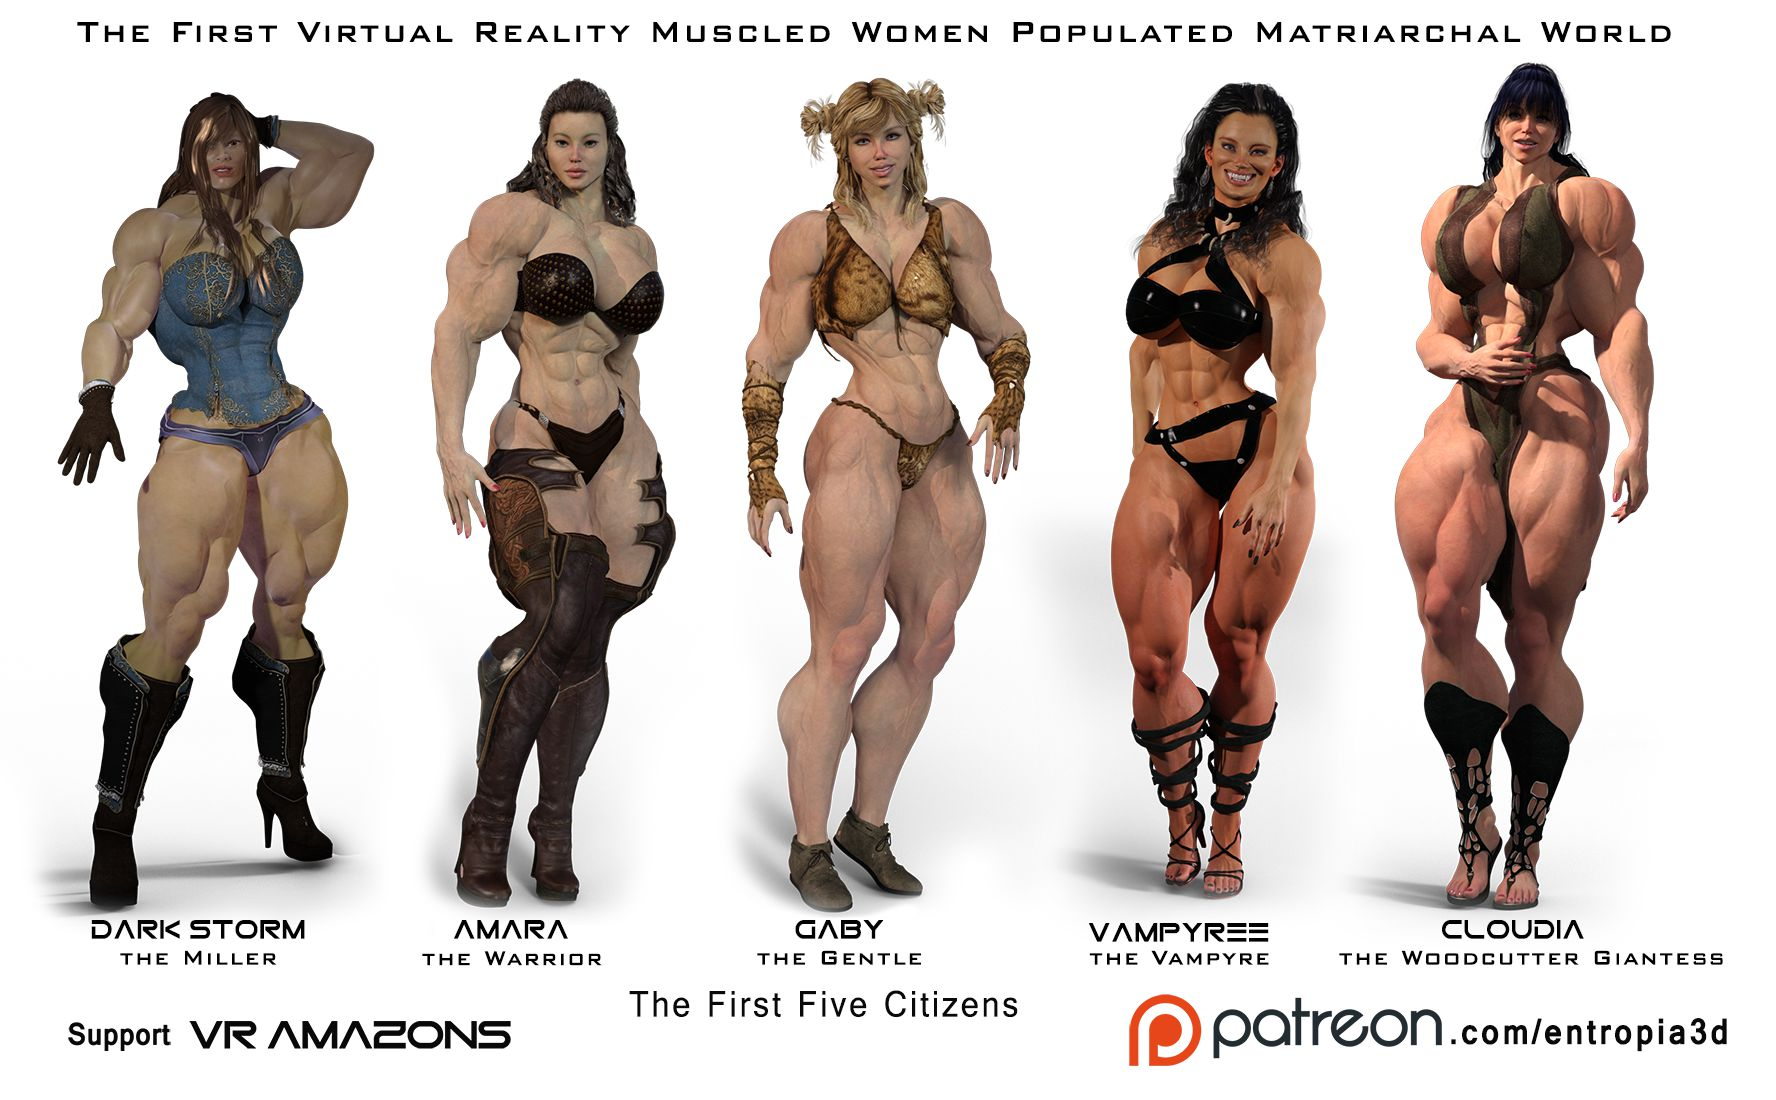 Amazon muscle women in 3d sex video